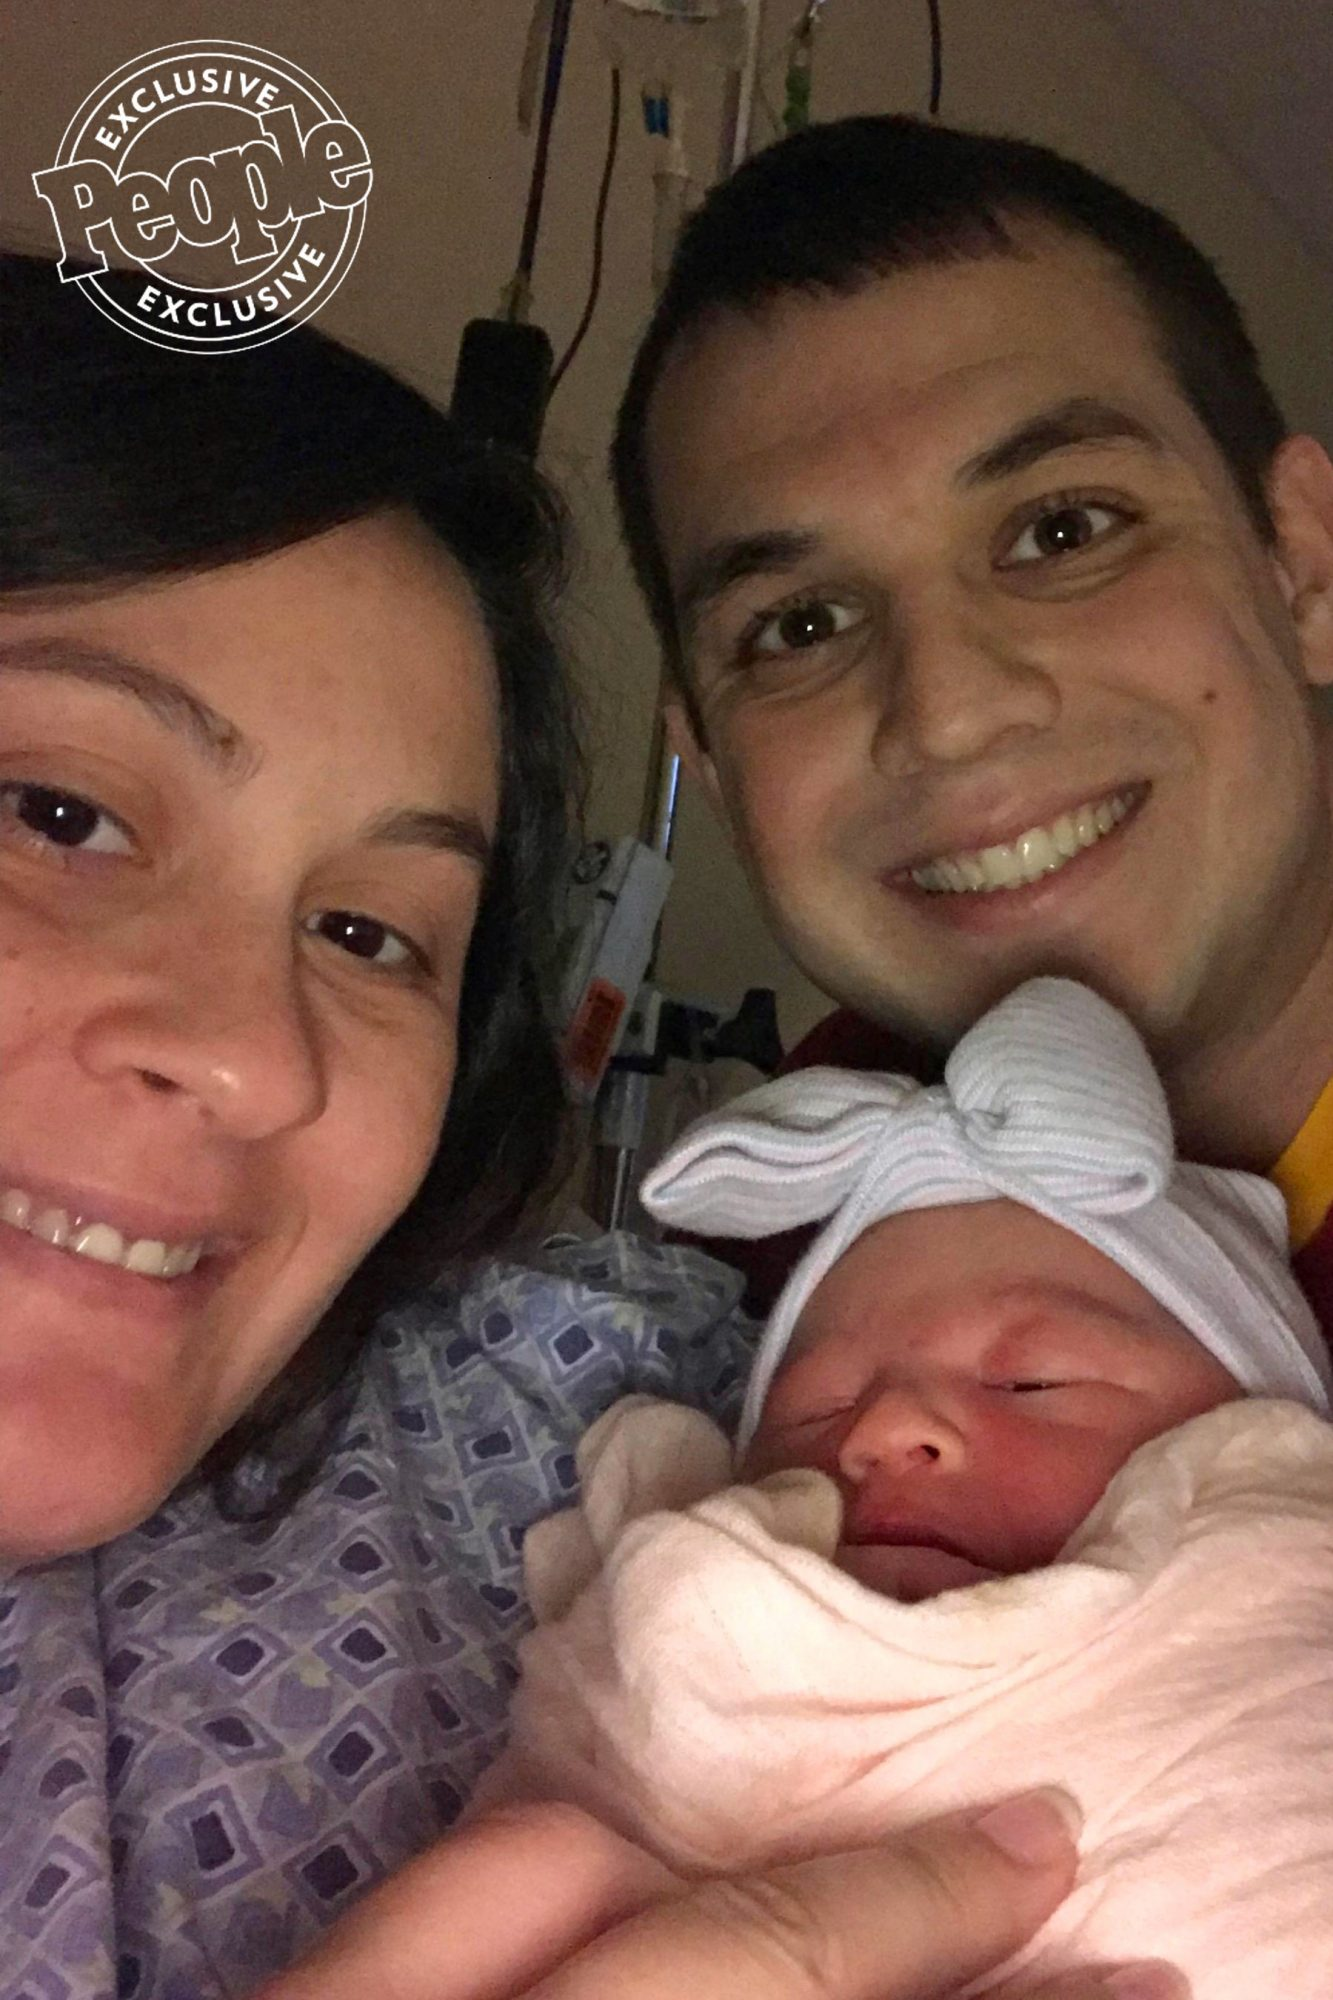 """It's love at first sight!                             Isabella Myra Wise was born to Married At First Sight alum Sam Role and fiancé Chris Wise on Sept. 7, at 6:58pm, weighing 7 lbs., 2 oz., and measuring 18½ inches long, Role said.                             """"It's been a long few days, but we are finally home with our sweet girl,"""" she continued. """"She is healthy and very happy! And we are the luckiest to have her as ours."""""""